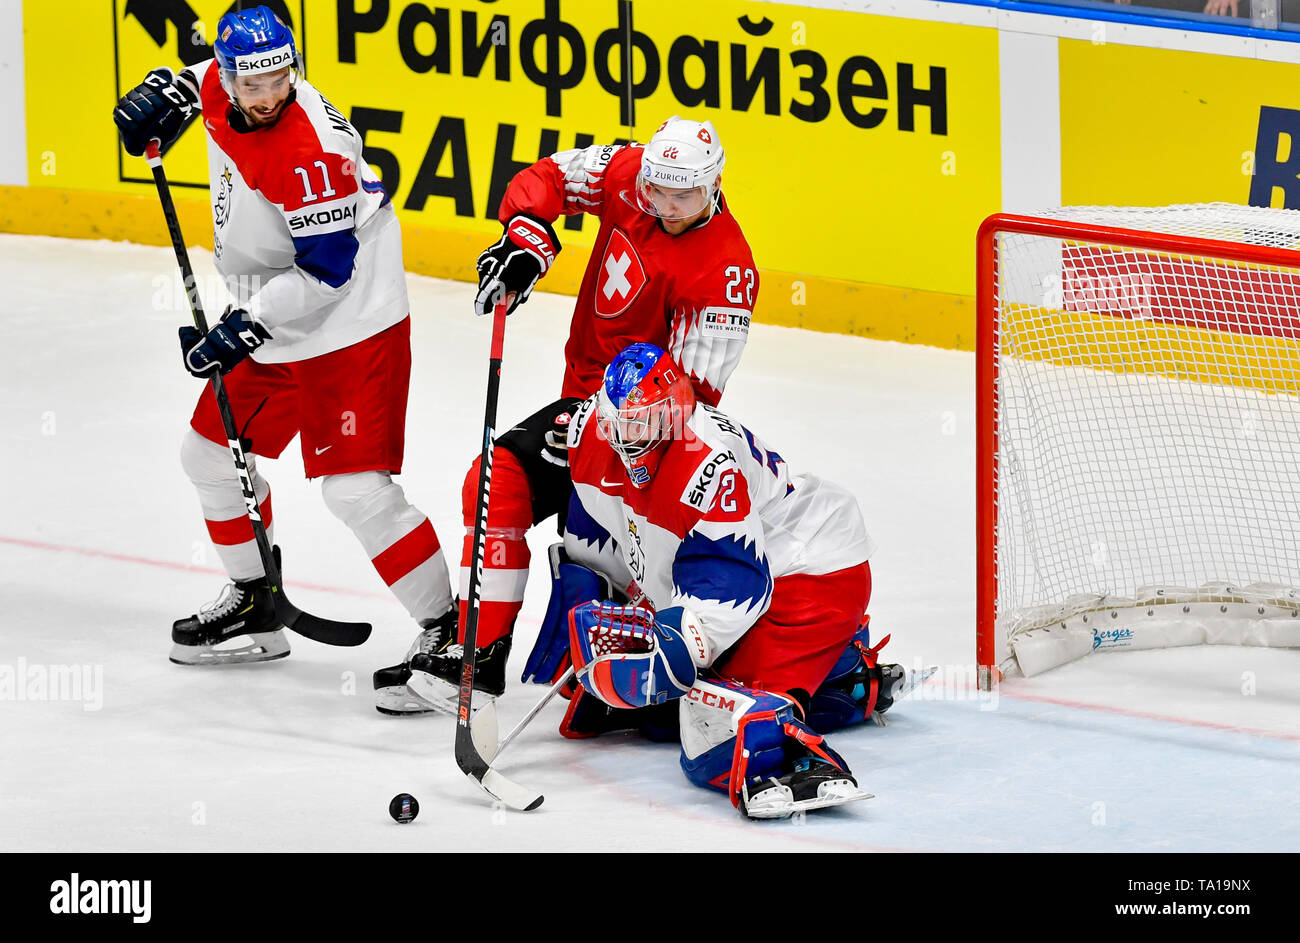 L-R Michal Moravcik (CZE), Nino Niederreiter (SUI) and Patrik Bartosak (CZE) in action during the match between Czech Republic and Switzerland within the 2019 IIHF World Championship in Bratislava, Slovakia, on May 21, 2019. (CTK Photo/Vit Simanek) Stock Photo